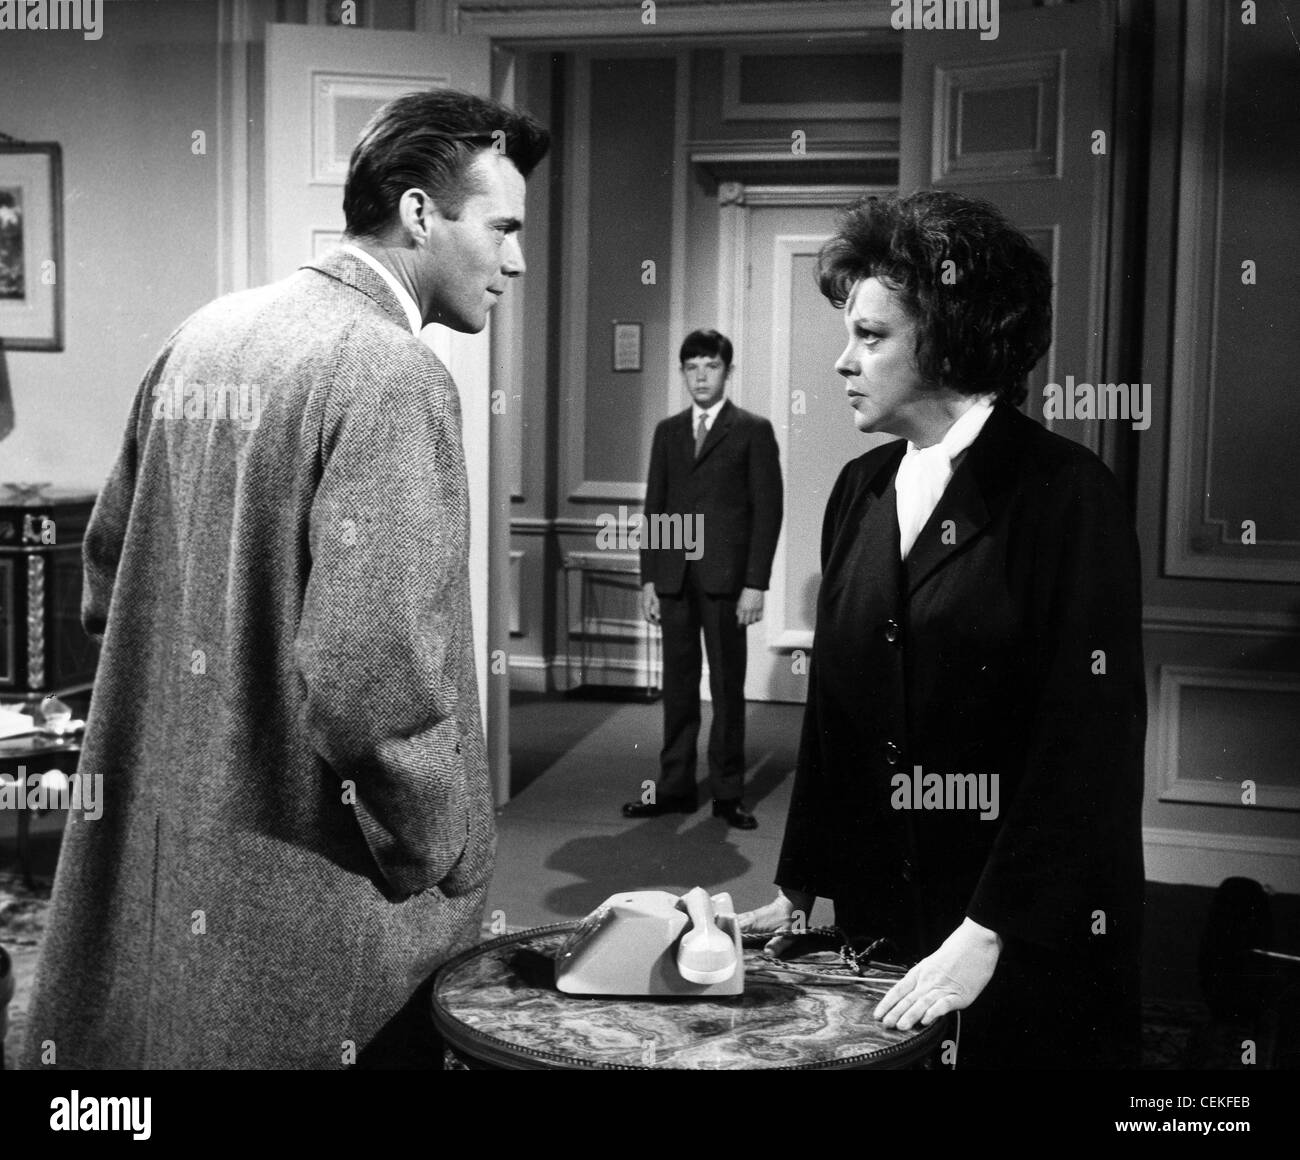 I COULD GO ON SINGING (1963) DIRK BOGARDE, GREGORY PHILLIPS, JUDY GARLAND RONALD NEAME (DIR) 005 MOVIESTORE COLLECTION - Stock Image